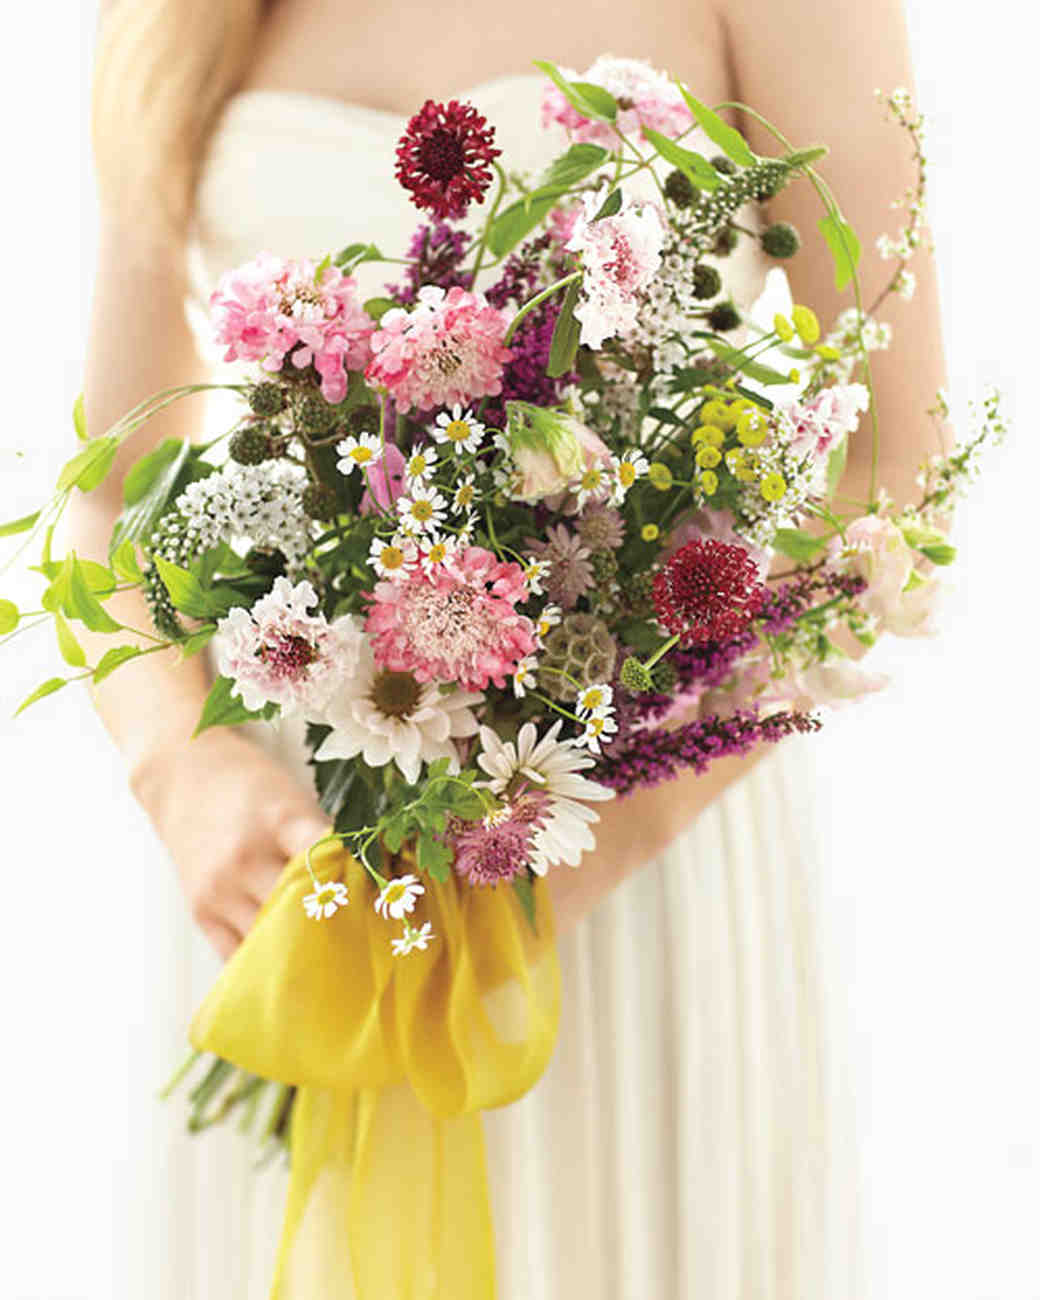 Wedding Flower Arrangements: Elegant And Inexpensive Wedding Flower Ideas